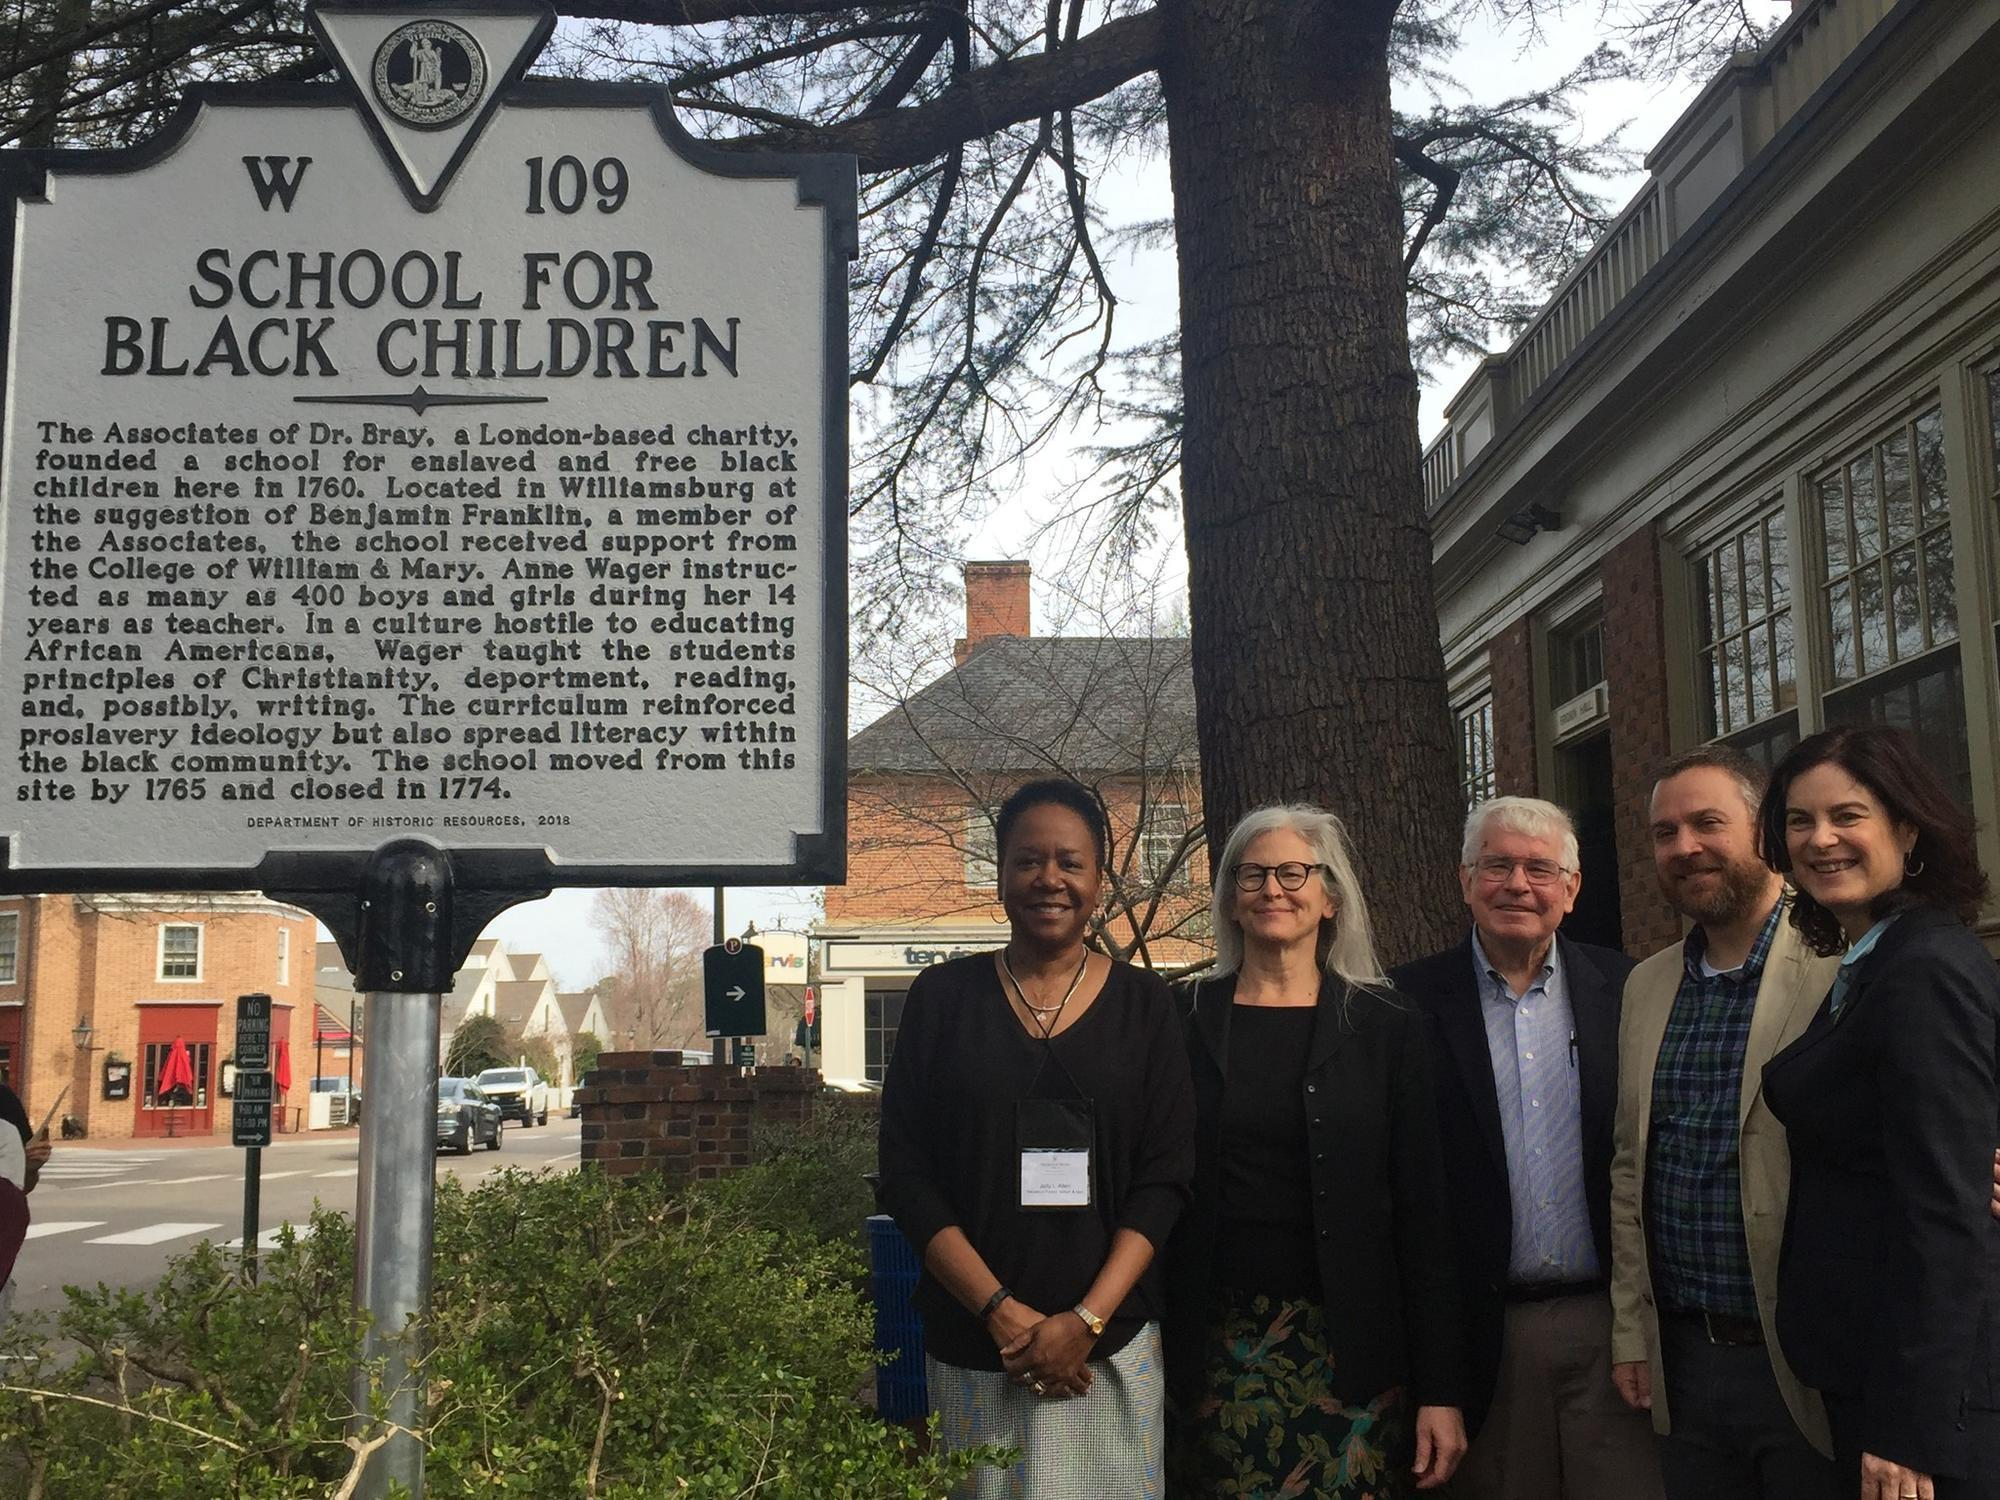 William and Mary places marker on N. Boundary Street to honor school for black children